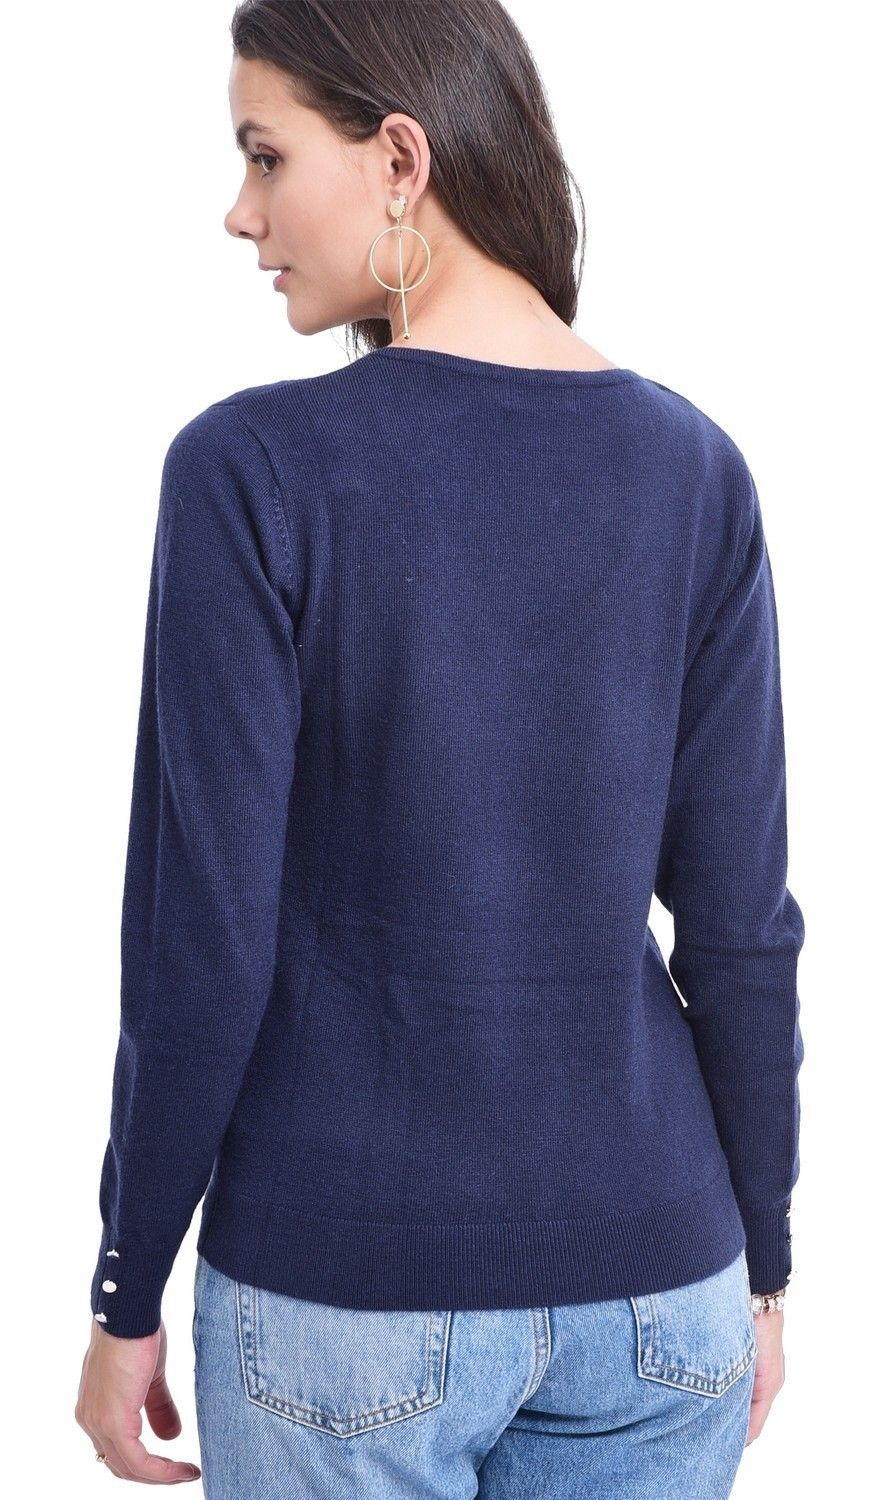 C&JO V-neck Sweater with Buttoned Sleeves in Navy